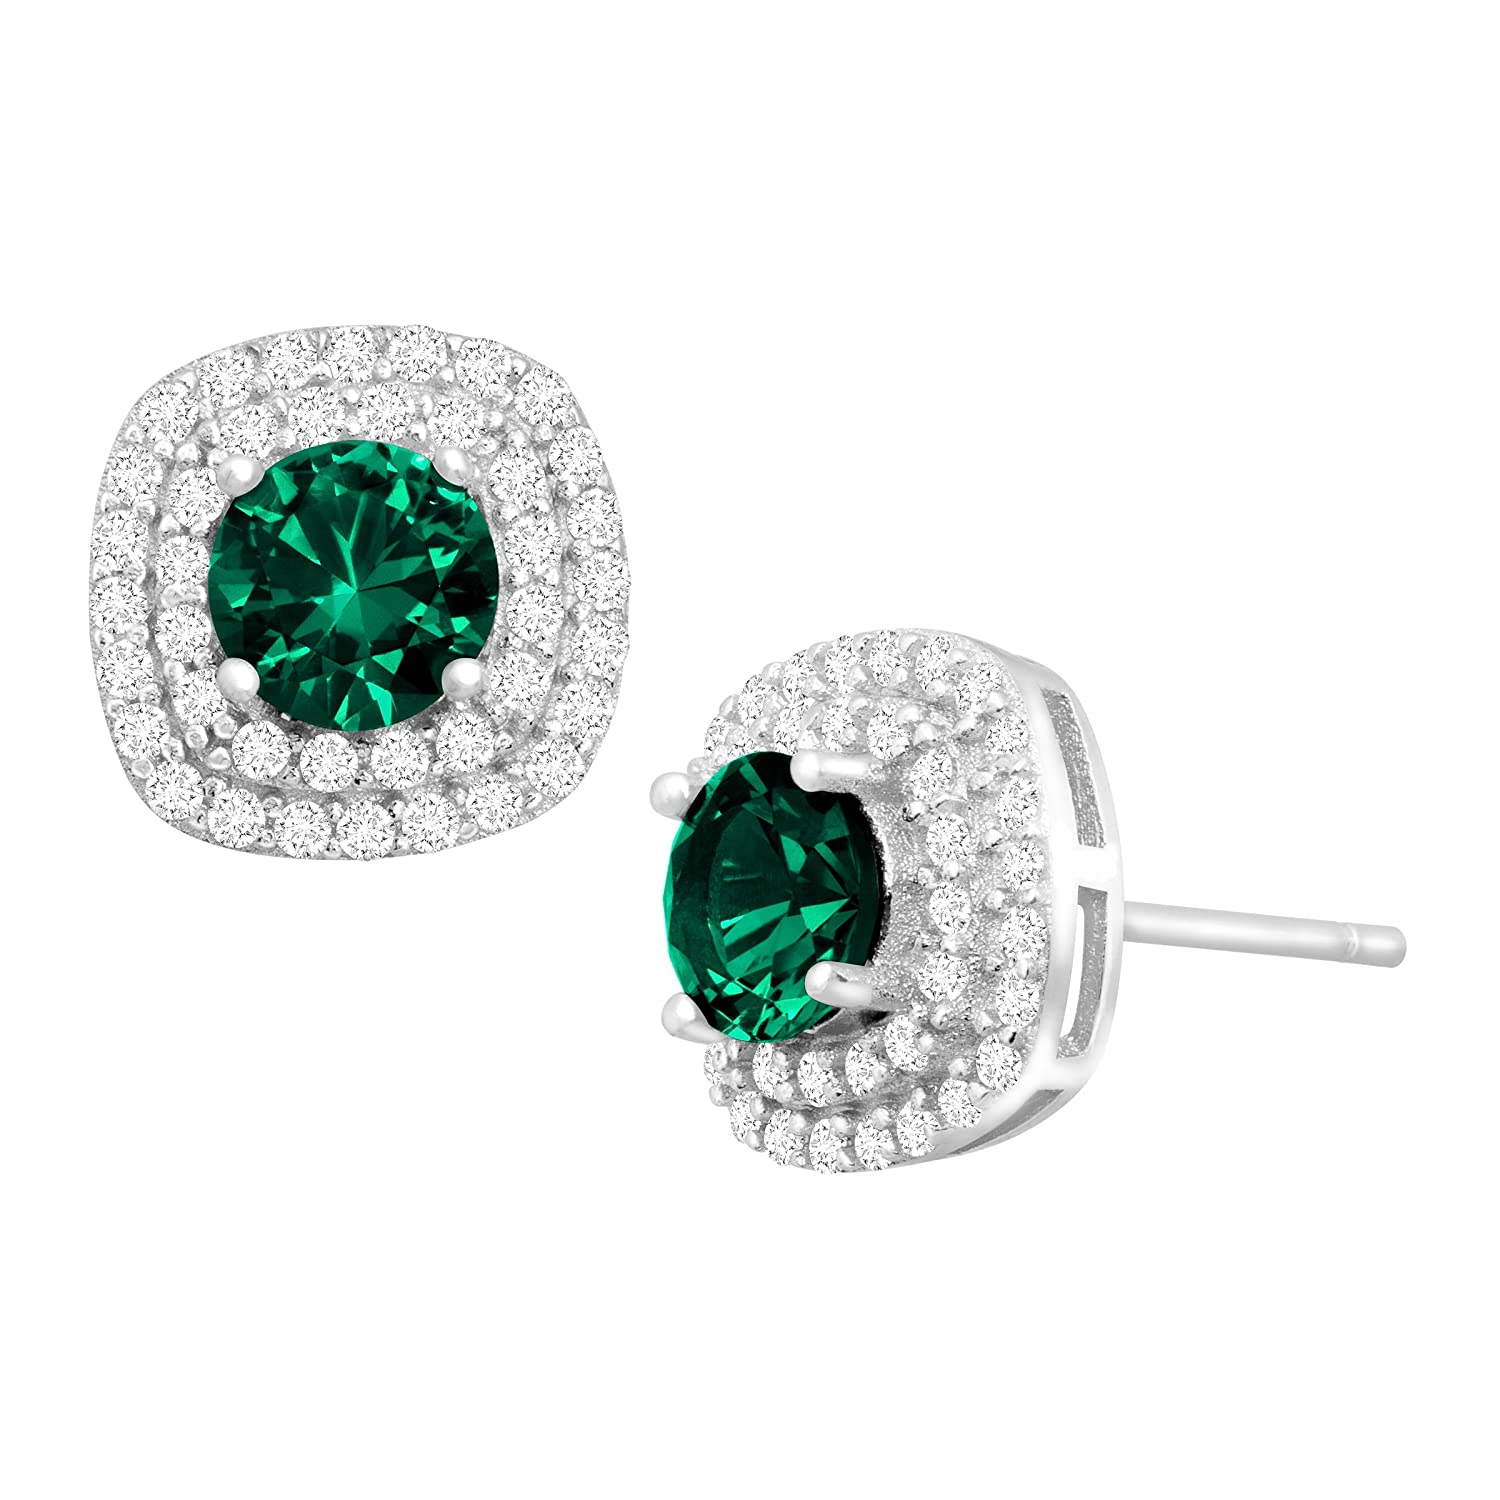 1 1/2 ct Created Emerald and Cubic Zirconia Halo Stud Earrings in Sterling Silver